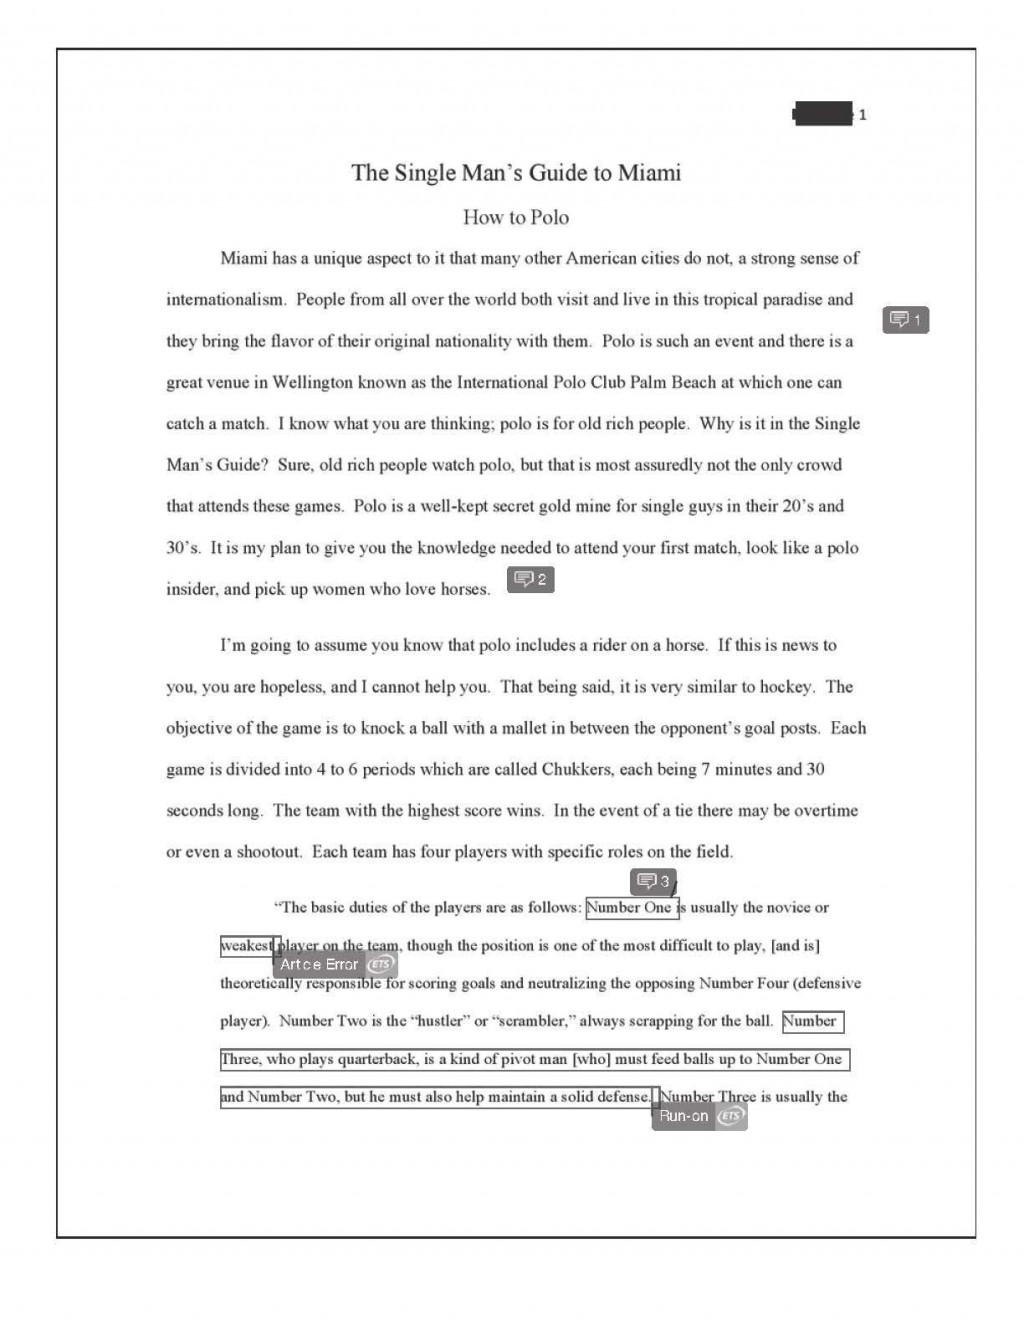 006 Example Of An Essay About Education Examples Informative Essays Writing Utopia Instruction Final How To Polo Redacted P Quiz Prewriting Quizlet Dreaded Write A Introduction Good Thesis For Large